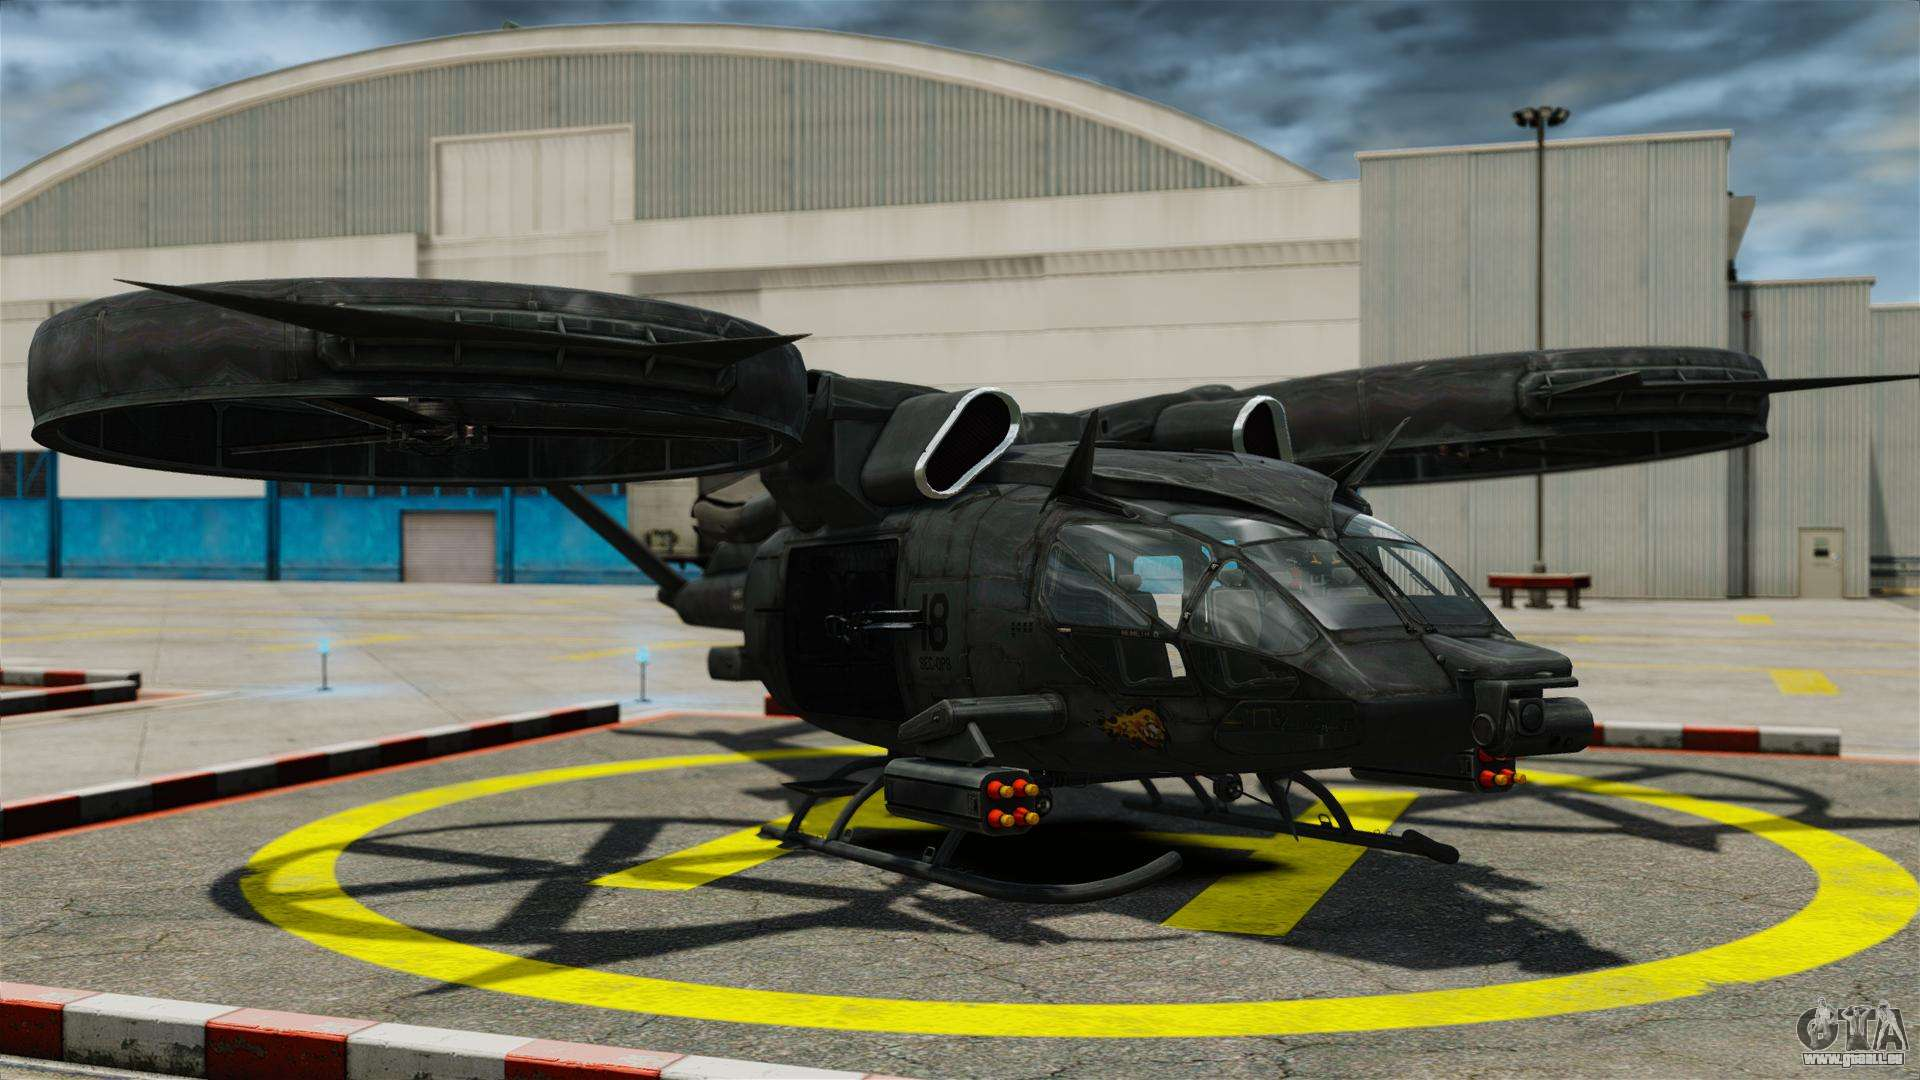 gta 4 ps3 helicopter cheat with 27061 Transportnyy Vertolet Sa 2 Samson on Gta v cheats likewise 23672 Crazy Trainer 350 V241 S besides Us Ps4 Cheats Codes For Gta 5 additionally Watch in addition B00II1VHEG.